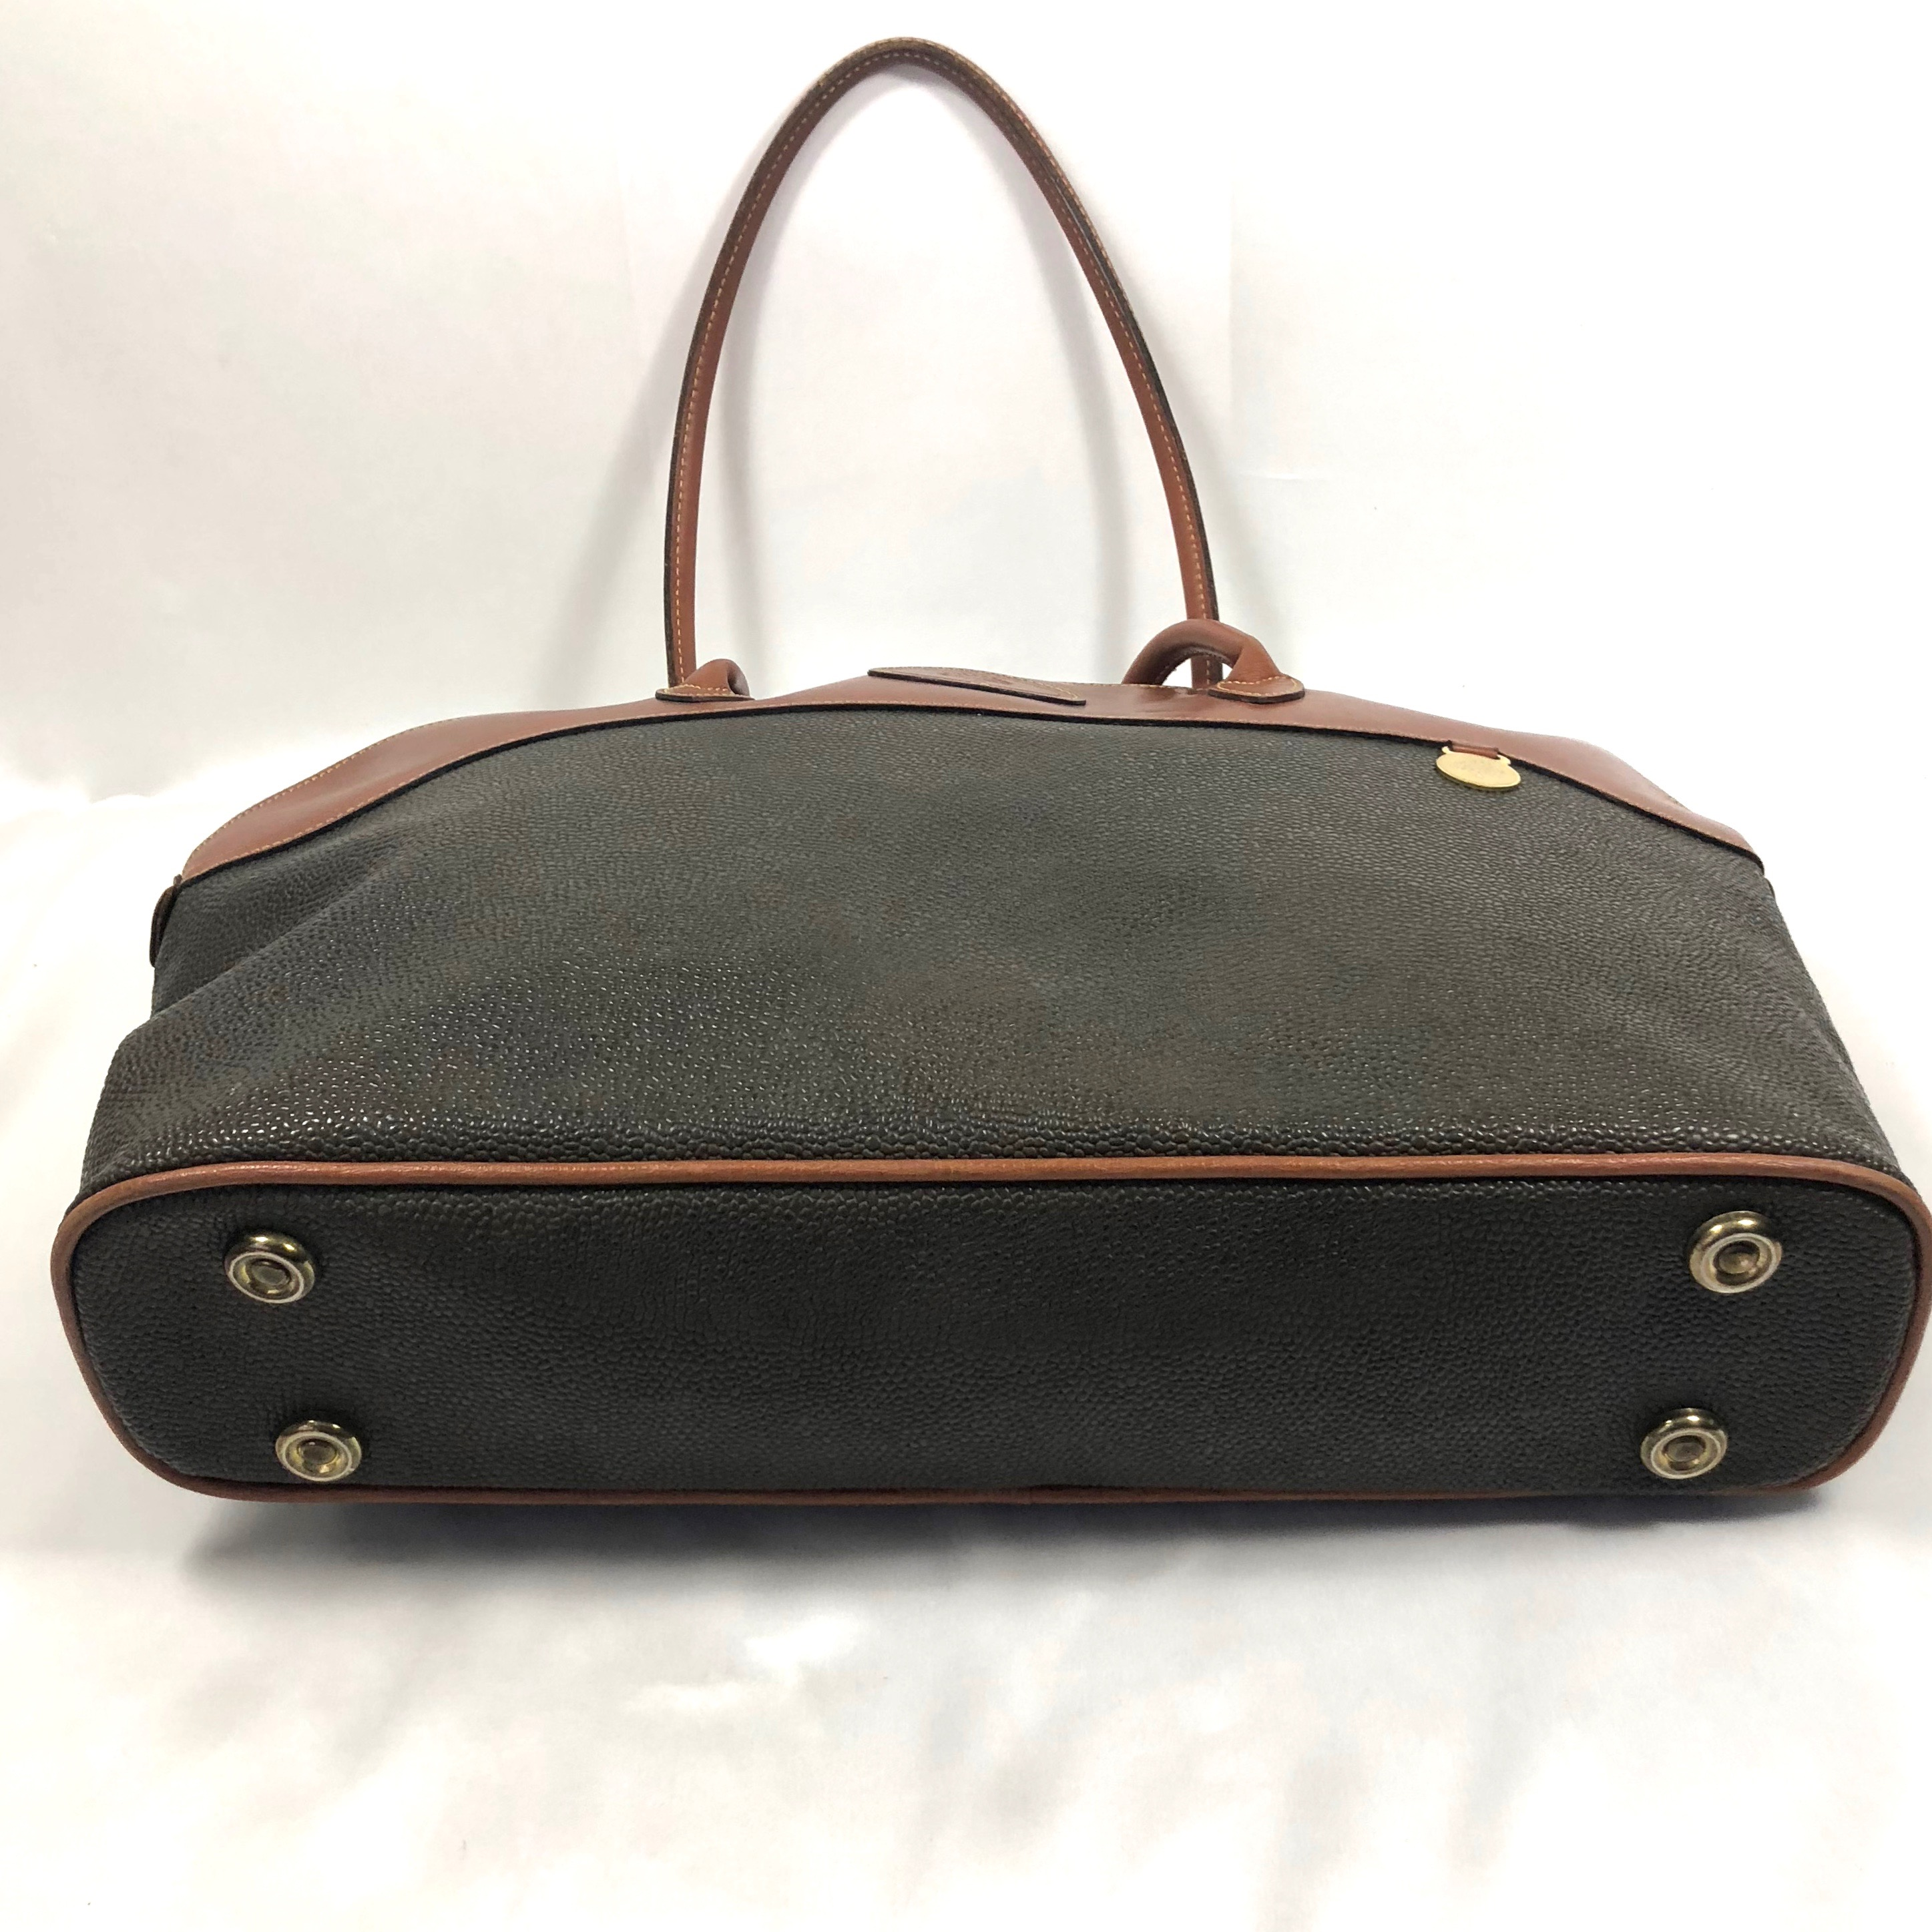 ... reduced mulberry scotchgrain shoulder tote 170a0 15740 reduced mulberry  scotchgrain shoulder tote 170a0 15740  order mulberry vintage black leather  ... 33b18ae81ca9c